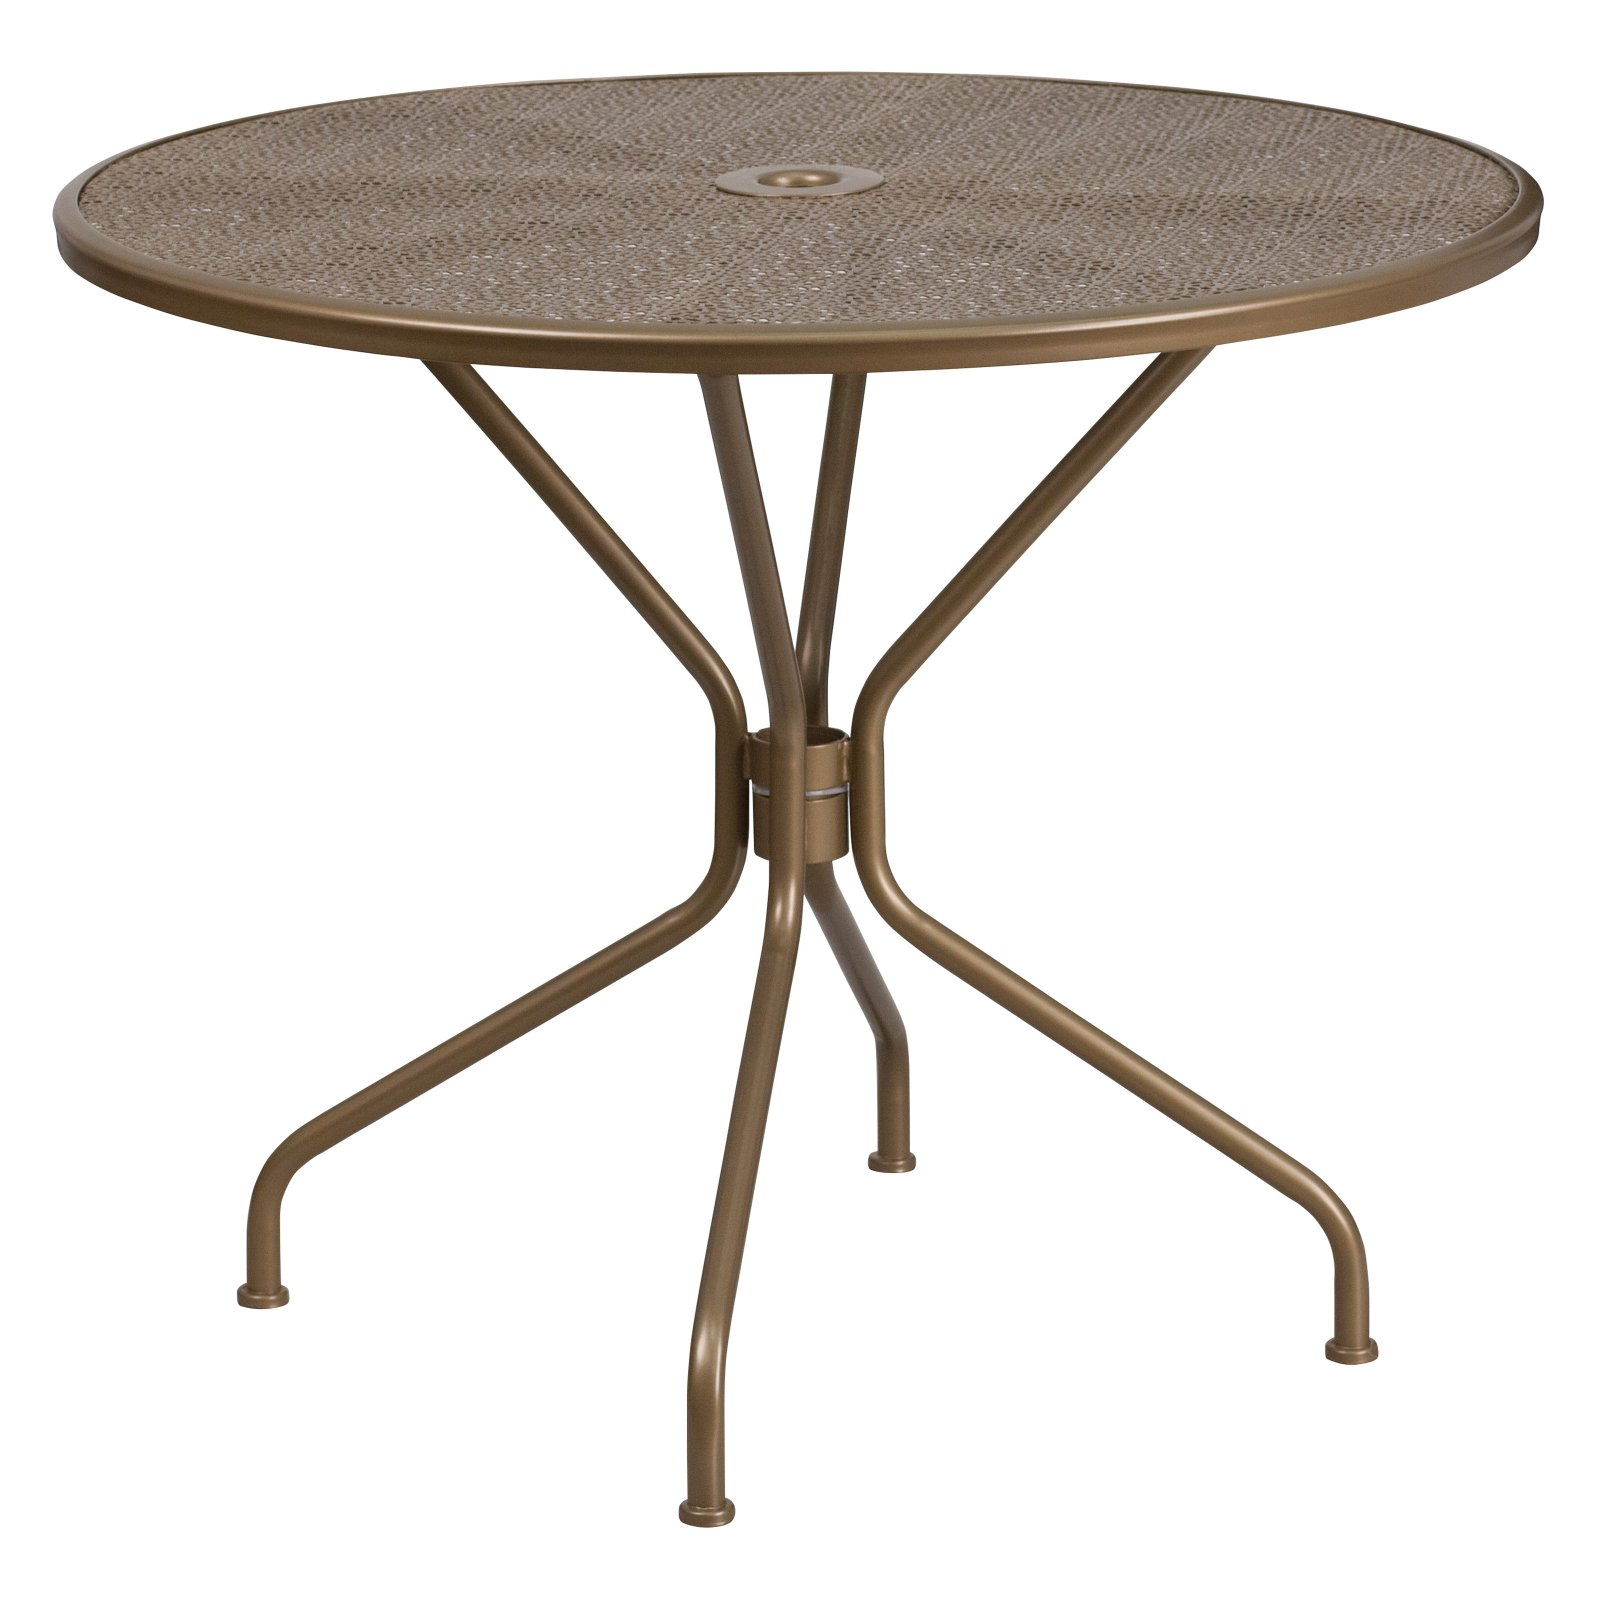 "Flash Furniture 35.25"" Round Indoor-Outdoor Steel Patio Table, Multiple Colors"